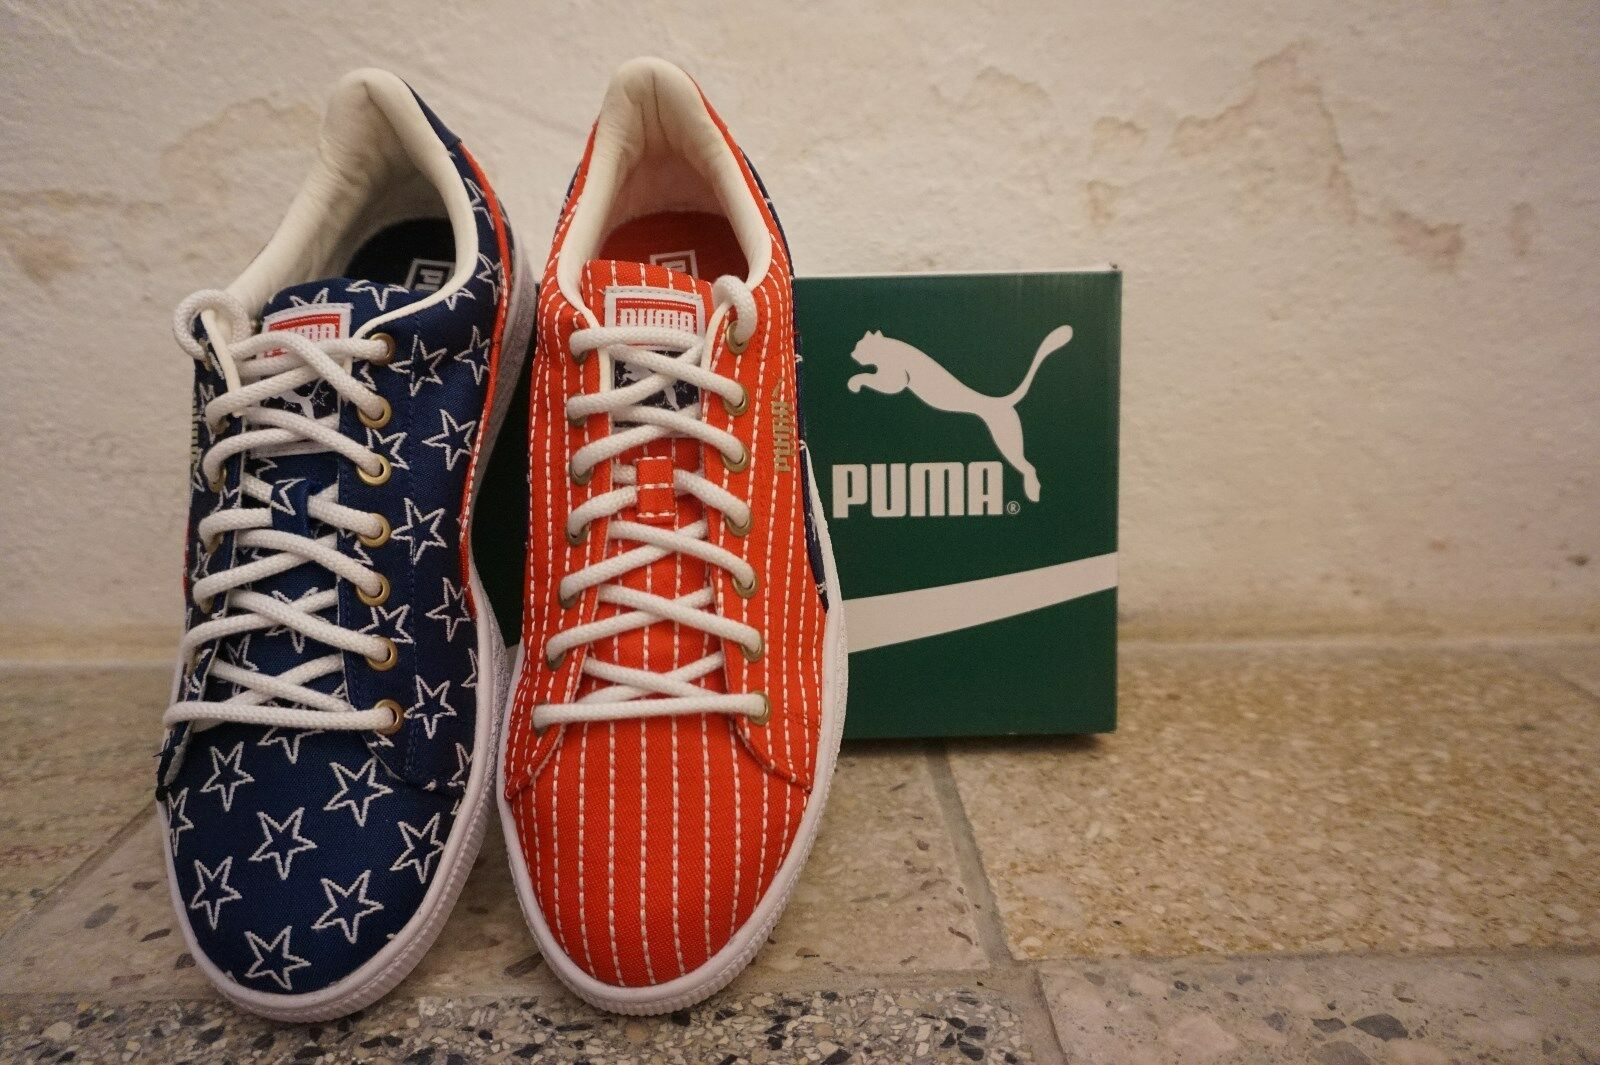 finest selection 31df4 021d5 ... PUMA PUMA PUMA Basket 4th of July-NUOVO-new-original - doubleboxed- ...